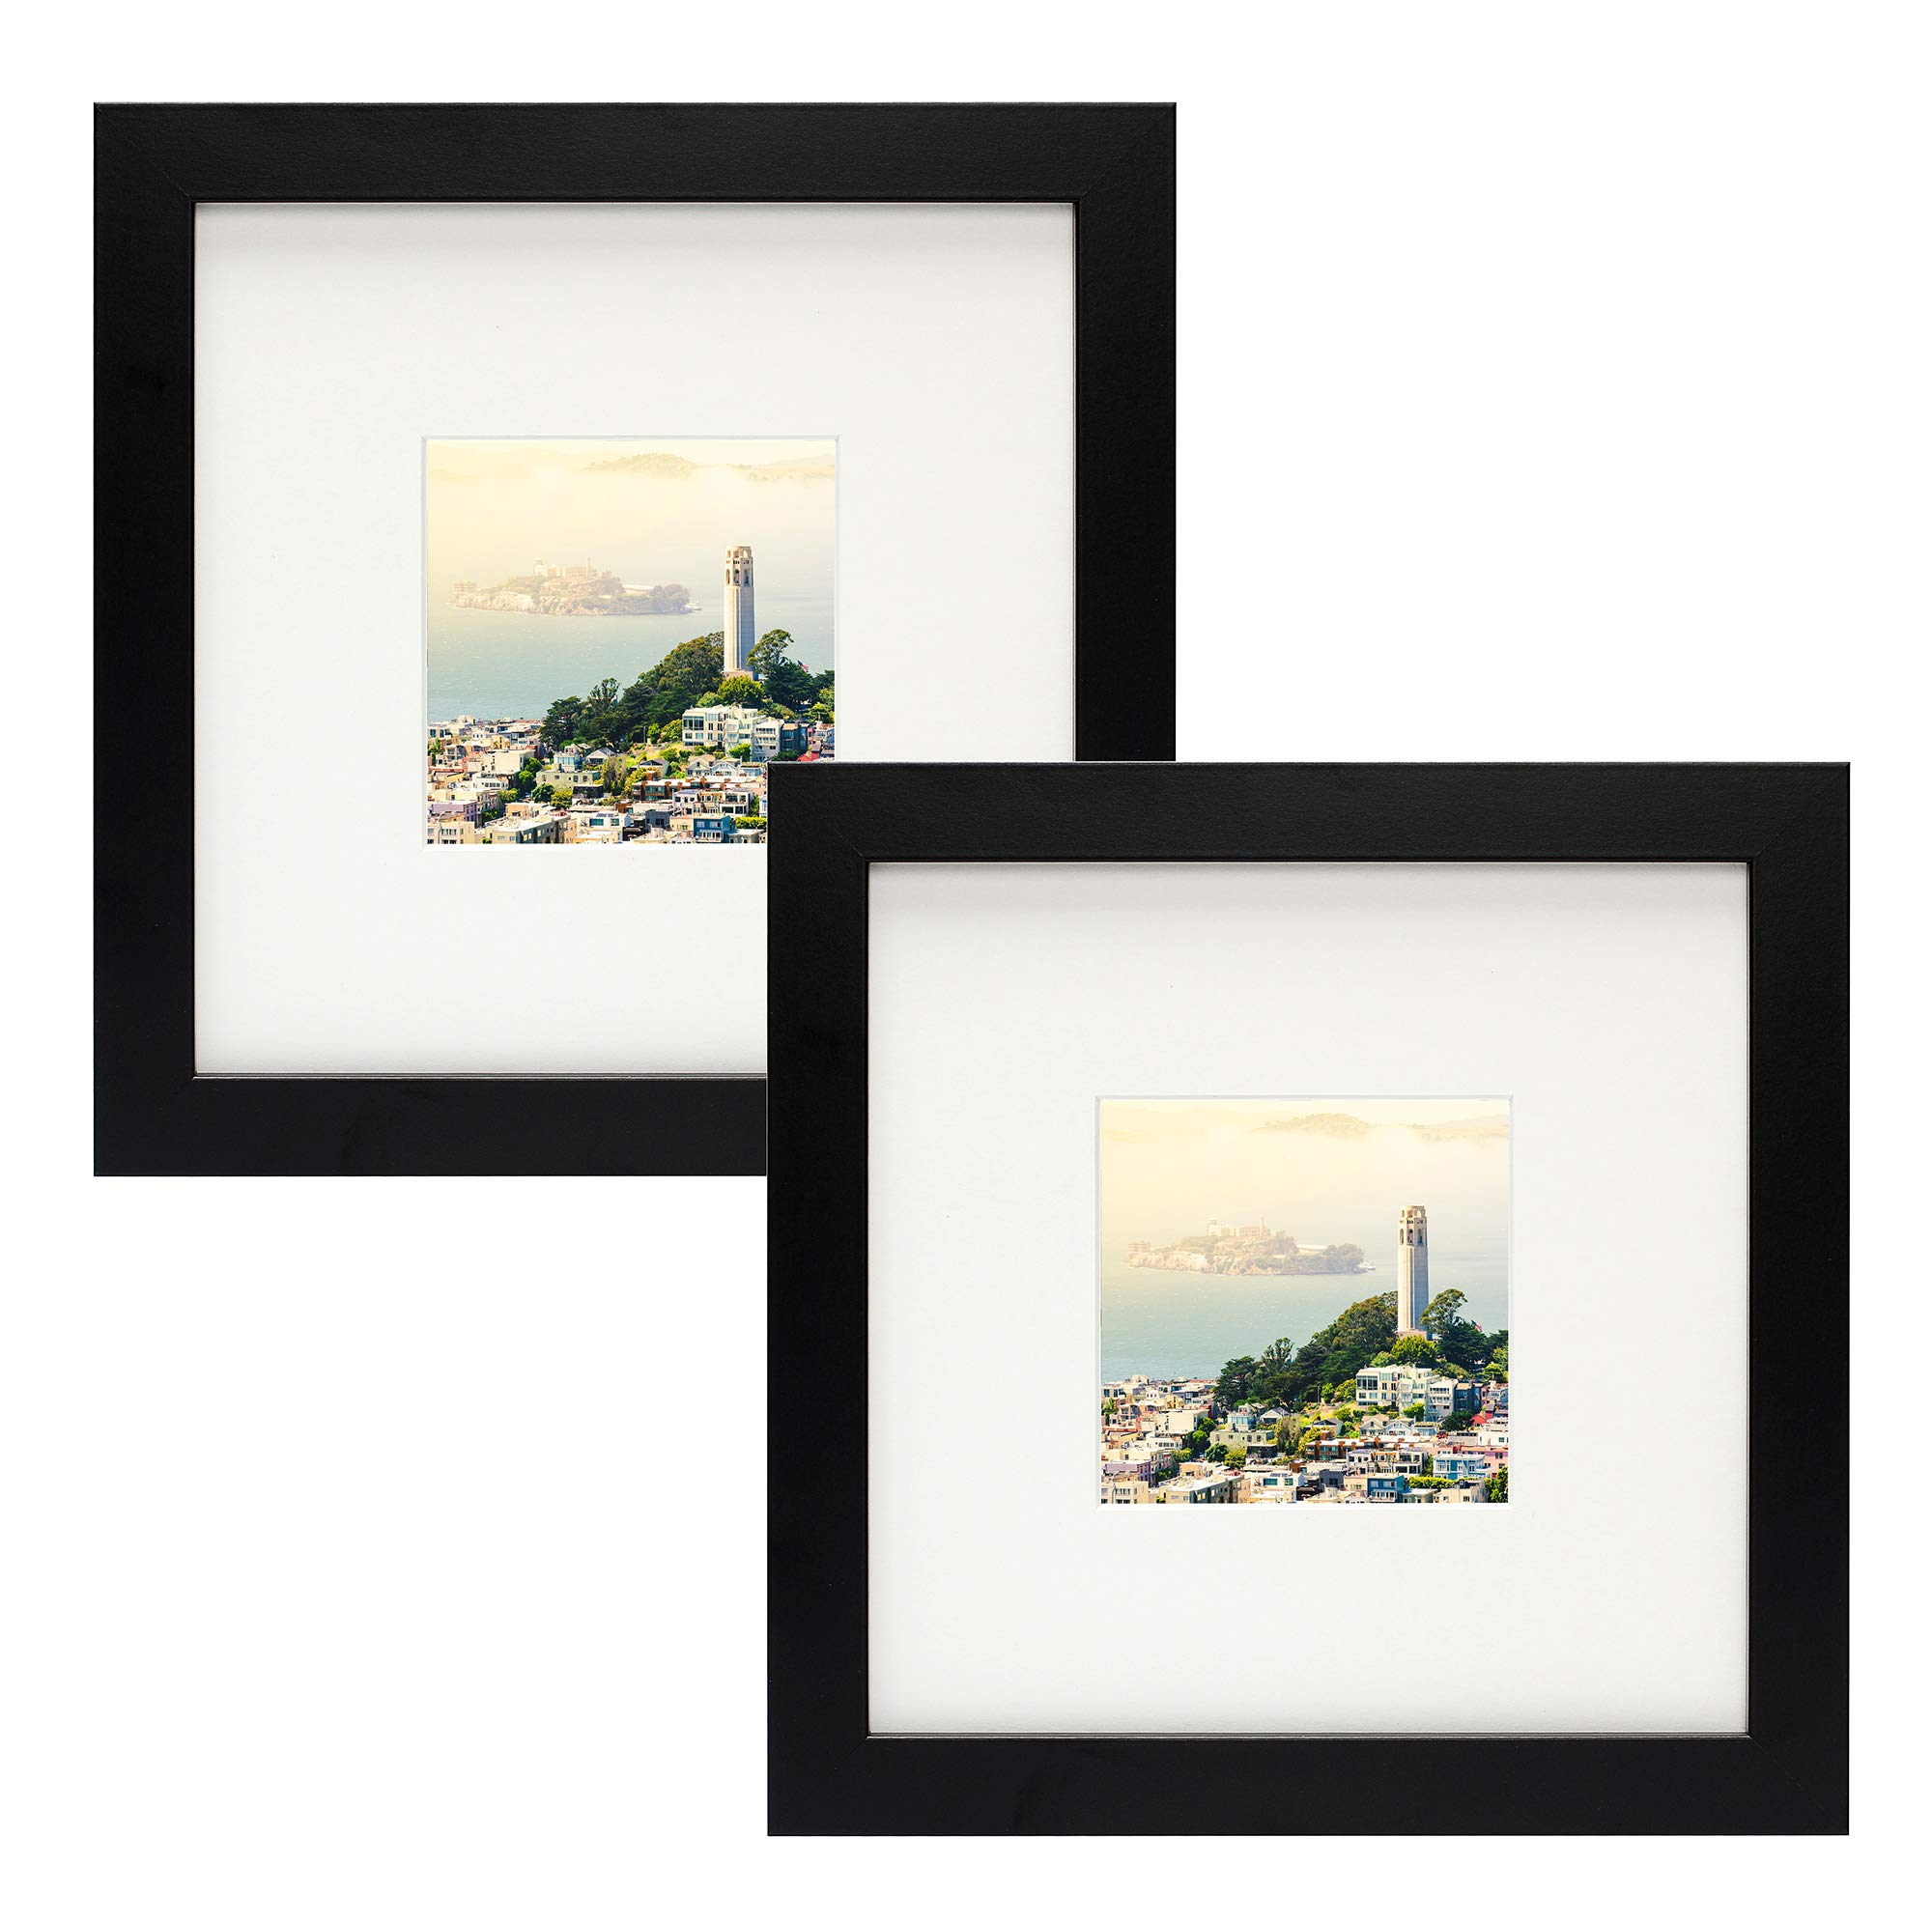 Frametory,Set of 2 Black Square Instagram Photo Frame -8X8 Table-Top (4x4 Matted) - Wide Molding - Built in Hanging Features (8x8 Set of 2, Black) by Frametory